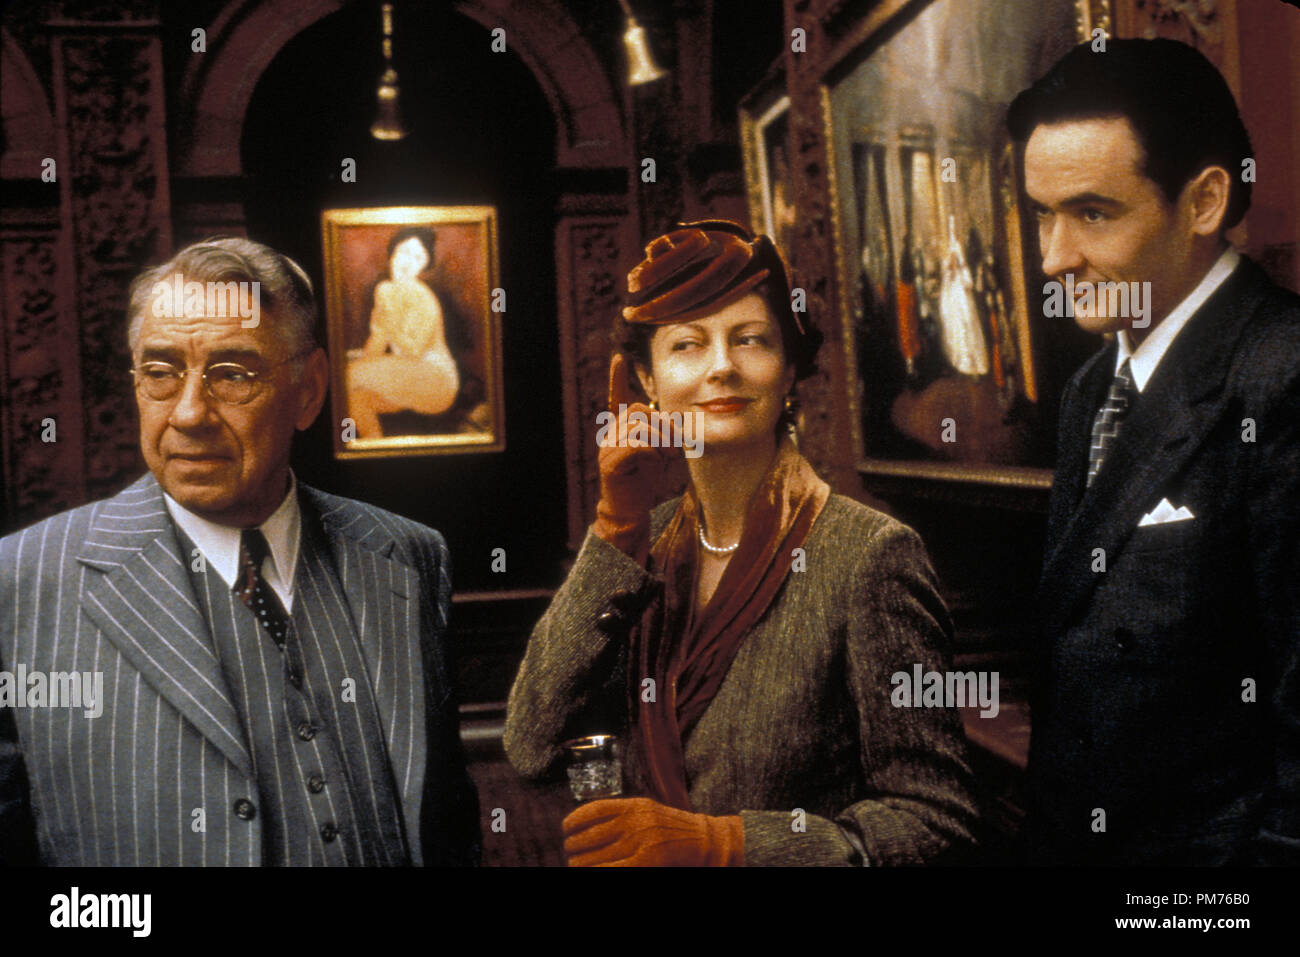 Film Still / Publicity Still from 'Cradle Will Rock' Phillip Baker Hall, Susan Sarandon, John Cusack © 1999 Touchstone Photo Credit: Demmie Todd   File Reference # 30973200THA  For Editorial Use Only -  All Rights Reserved - Stock Image